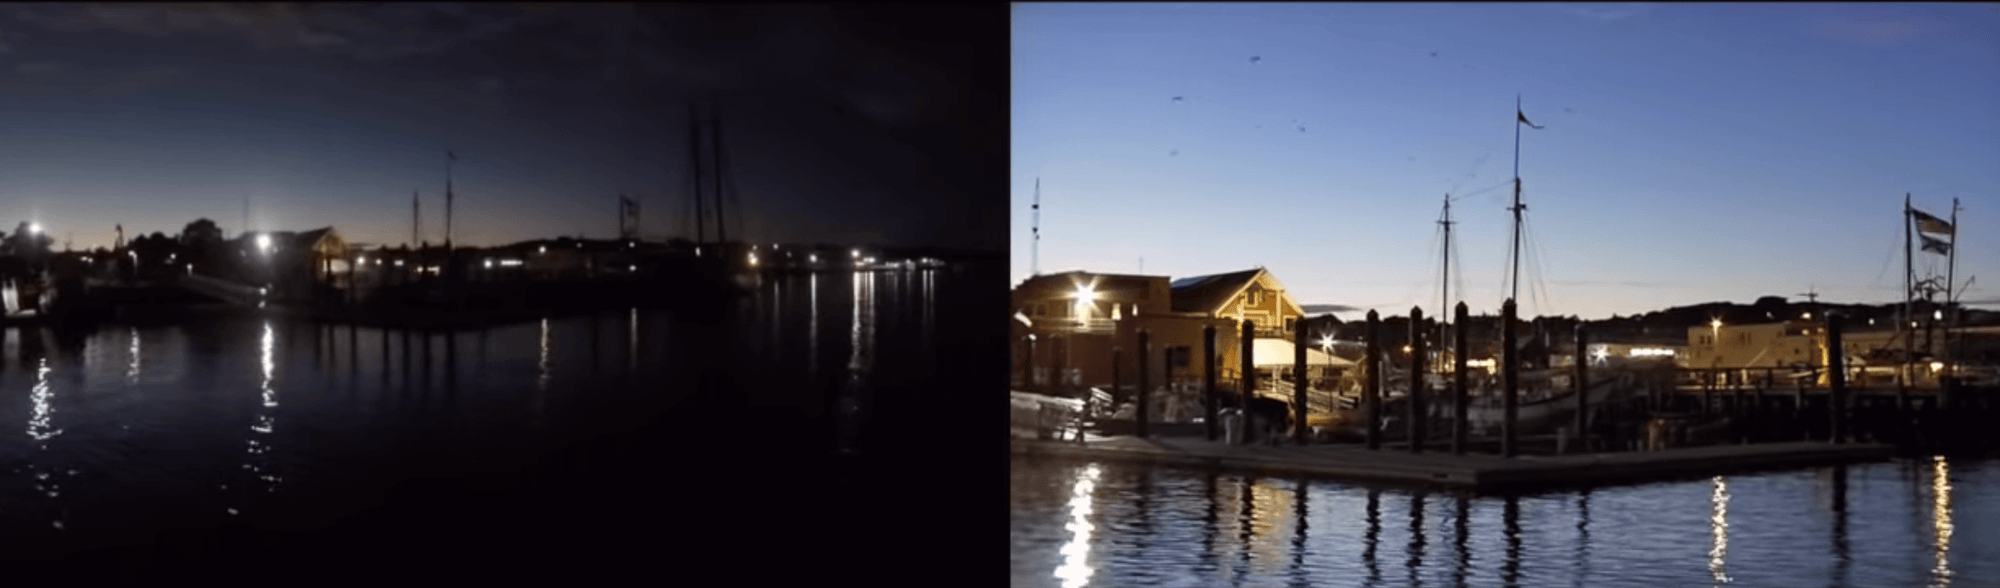 Boating At Night with SiOnyx Night Vision by BoatUS